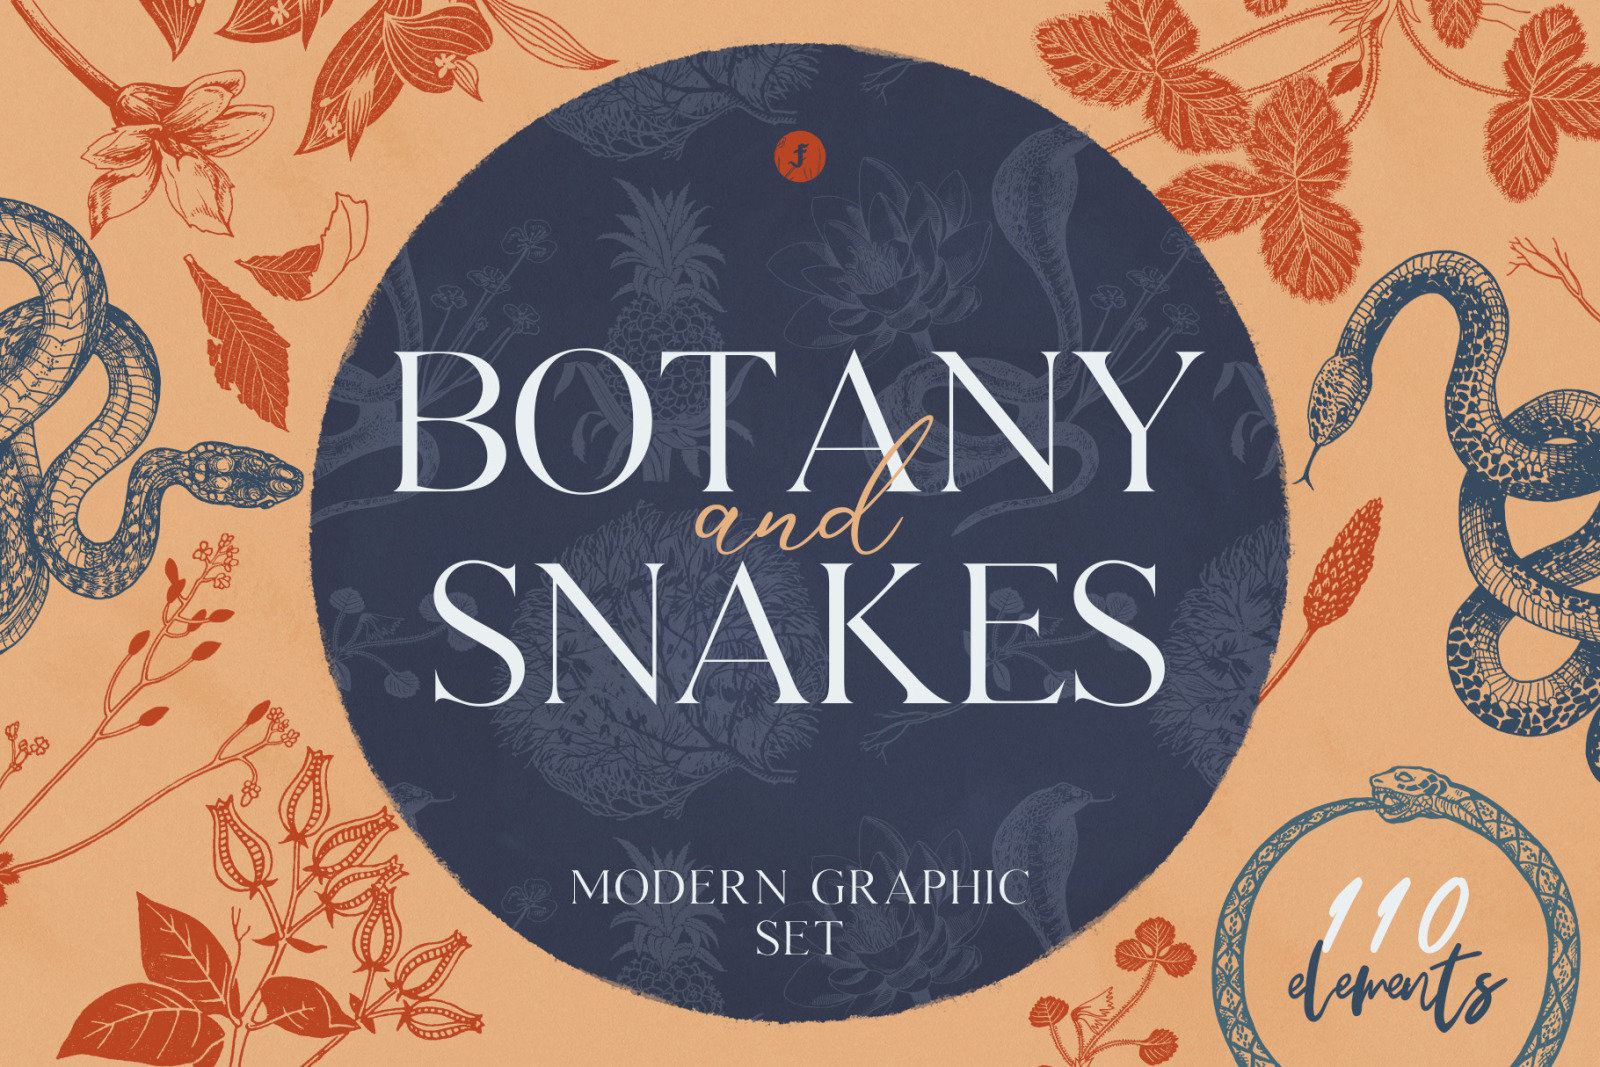 Botany and Snakes